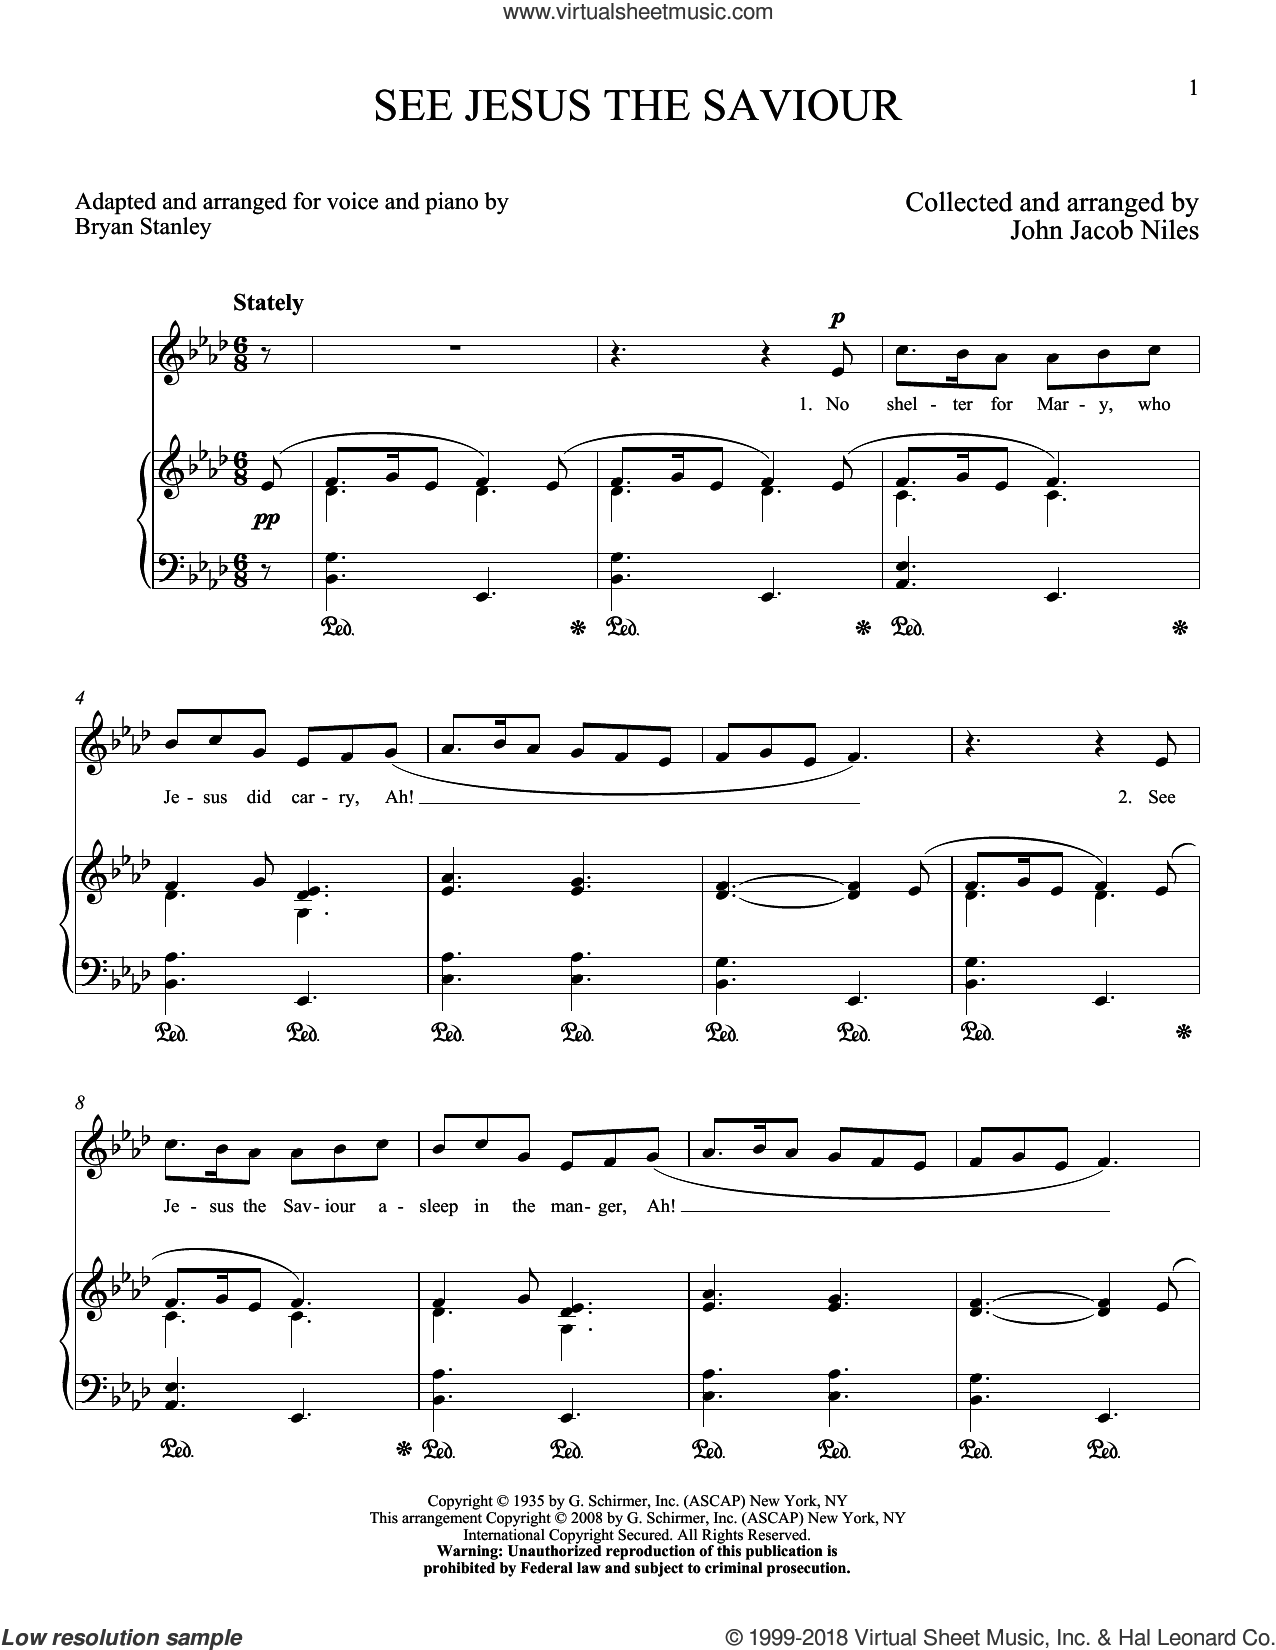 See Jesus, The Saviour sheet music for voice and piano (High Voice) by John Jacob Niles, intermediate skill level